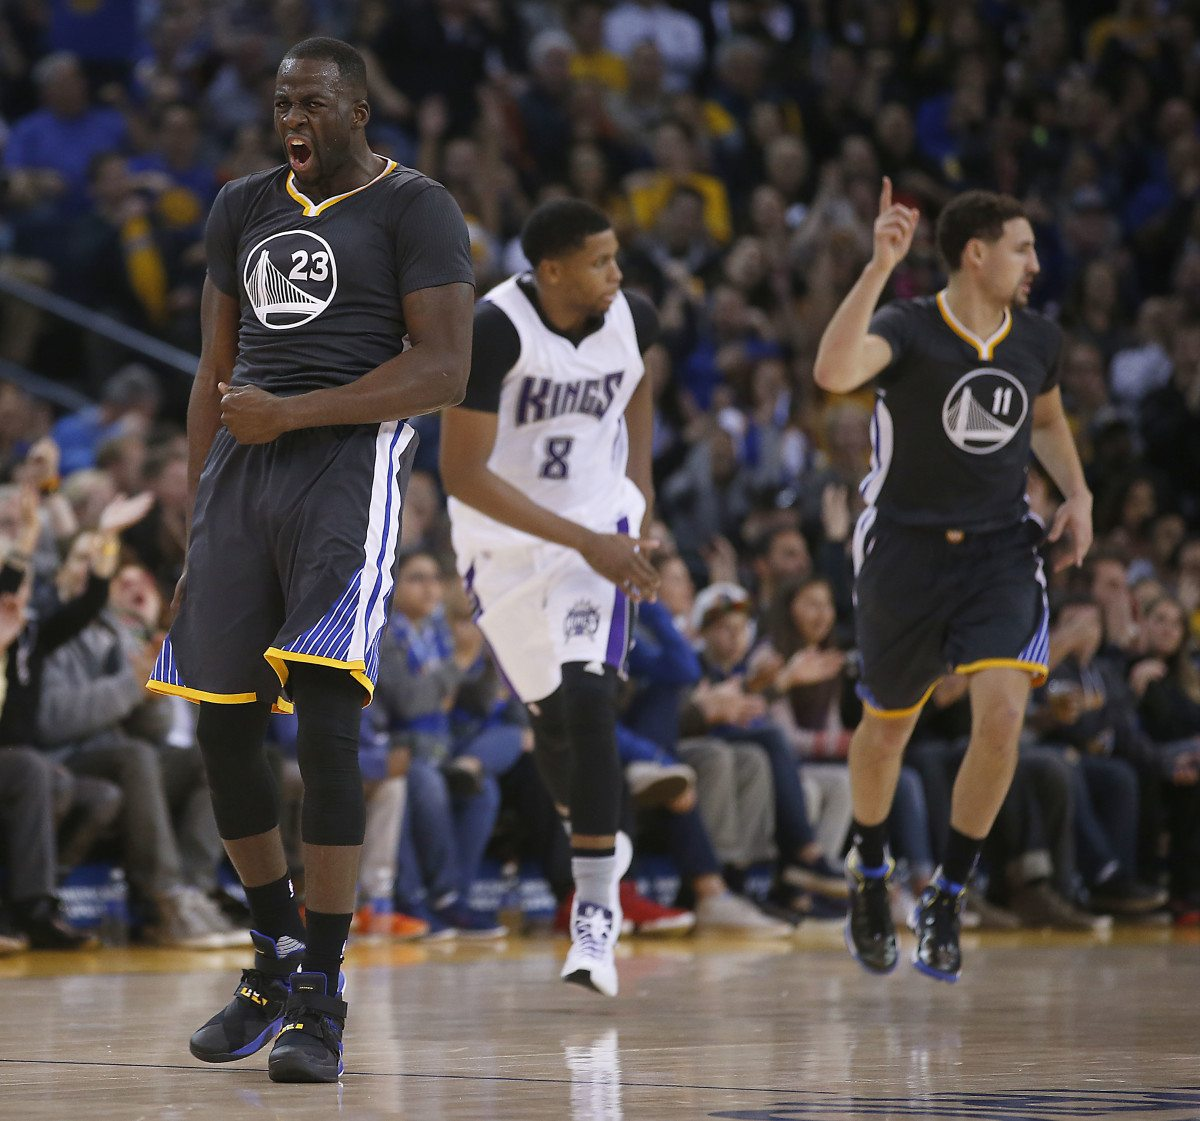 Golden State Warriors forward Draymond Green (23) reacts after guard Klay Thompson, right, hit a three-point shot against Sacramento Kings forward Rudy Gay, center, during the first half of an NBA basketball game Saturday, Nov. 28, 2015, in Oakland, Calif. (Tony Avelar/AP)